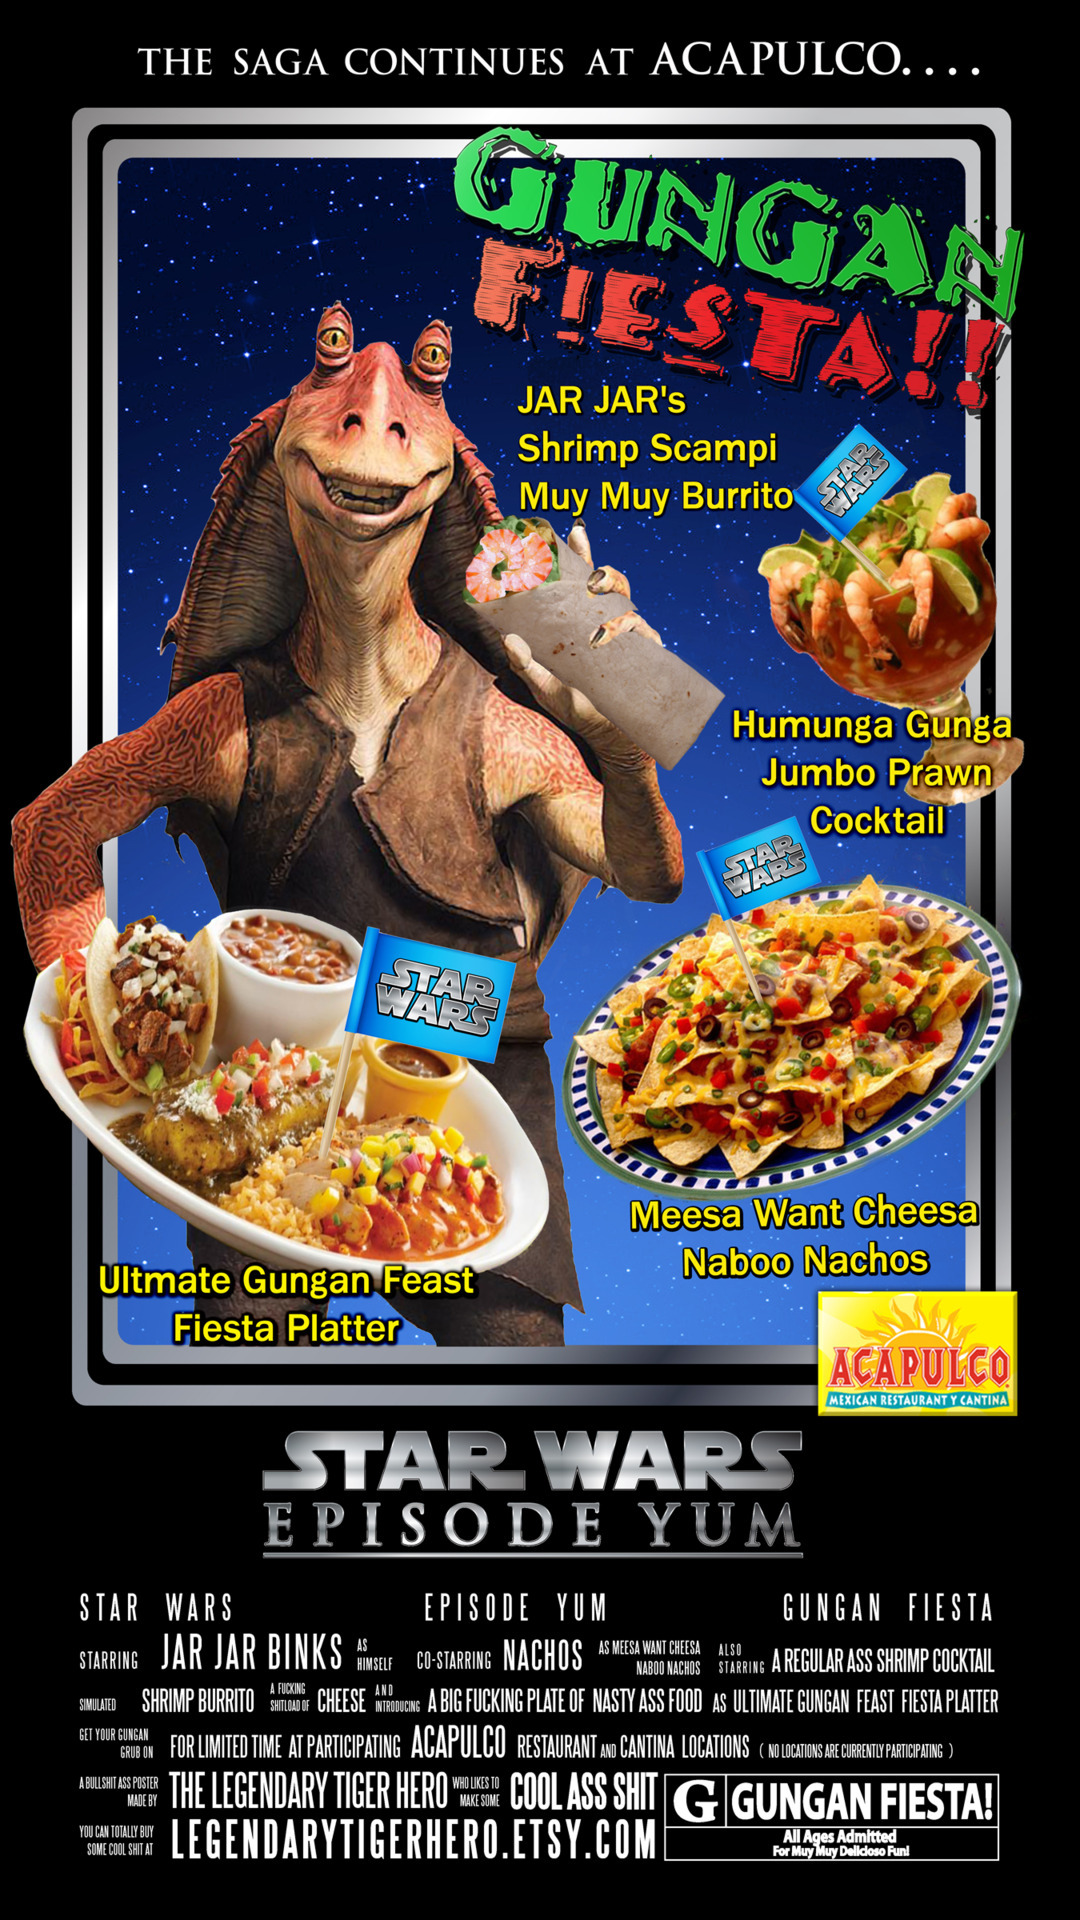 "Scrapped poster for Episode I/Acapulco Restaurants Gungan Fiesta!!  promo  (That I made up!) Last February, moviegoers watched the thrills and spills of yesteryear with the release of Star Wars Episode I 3D. For many young fans, it will be their first time to experience the excitement of seeing their favorite scenes come to life on the big screen. Many older fans will have to sit with a bunch of fucking kids as they relive the beginning tale of George Lucas's epic space opera in stunning real D™ 3D.  There is a great disturbance in the force! Or is there? Since it's original theatrical release in 1999, Episode I has been talked about with mixed reviews and subjected to muy moy controversy. One of the biggest griefs that older fans share is the dislike for the ever-so-wacky character Jar Jar Binks. On the other side of coin, many younger fans truly enjoy watching the slapstick humor of the unlikely Gungan hero.  Secret it is not! Lucasfilm had high expectations for Jar Jar, as did the numerous licensing companies that came through, looking to get their products adorned with all of the new and exciting creatures from the upcoming Star Wars film. They would ask ""Wow! What's this salamander looking dude? He sure looks happy!"" Then, the Lucasfilm rep would explain: ""Oh! This is Jar Jar Binks! He's going to be the next Chewbacca/C-3p0!"" Easy sell! The next thing you know, Jar Jar's likeness was plastered all over the place. However, when word got out about the people's hatred for Jar Jar, many many ad campaigns were prematurely pulled.  So, I present to thee, such an ad. A never-before-seen (fans really like that kind of shit)  promotional ad campaign from Acapulco restaurants.*  This fucker never saw the light of day!   *ad is some fake ass shit and is intended as satire. The image displayed is an artist's depiction of some type of shit that most likely went down on some peeps that got straight up played. No copyright violation, defamation, or slander is intended for the good folks at Acapulco. You guys should eat there and spend a lot of money even though the food there is straight up bullshit -but that's just my opinion."